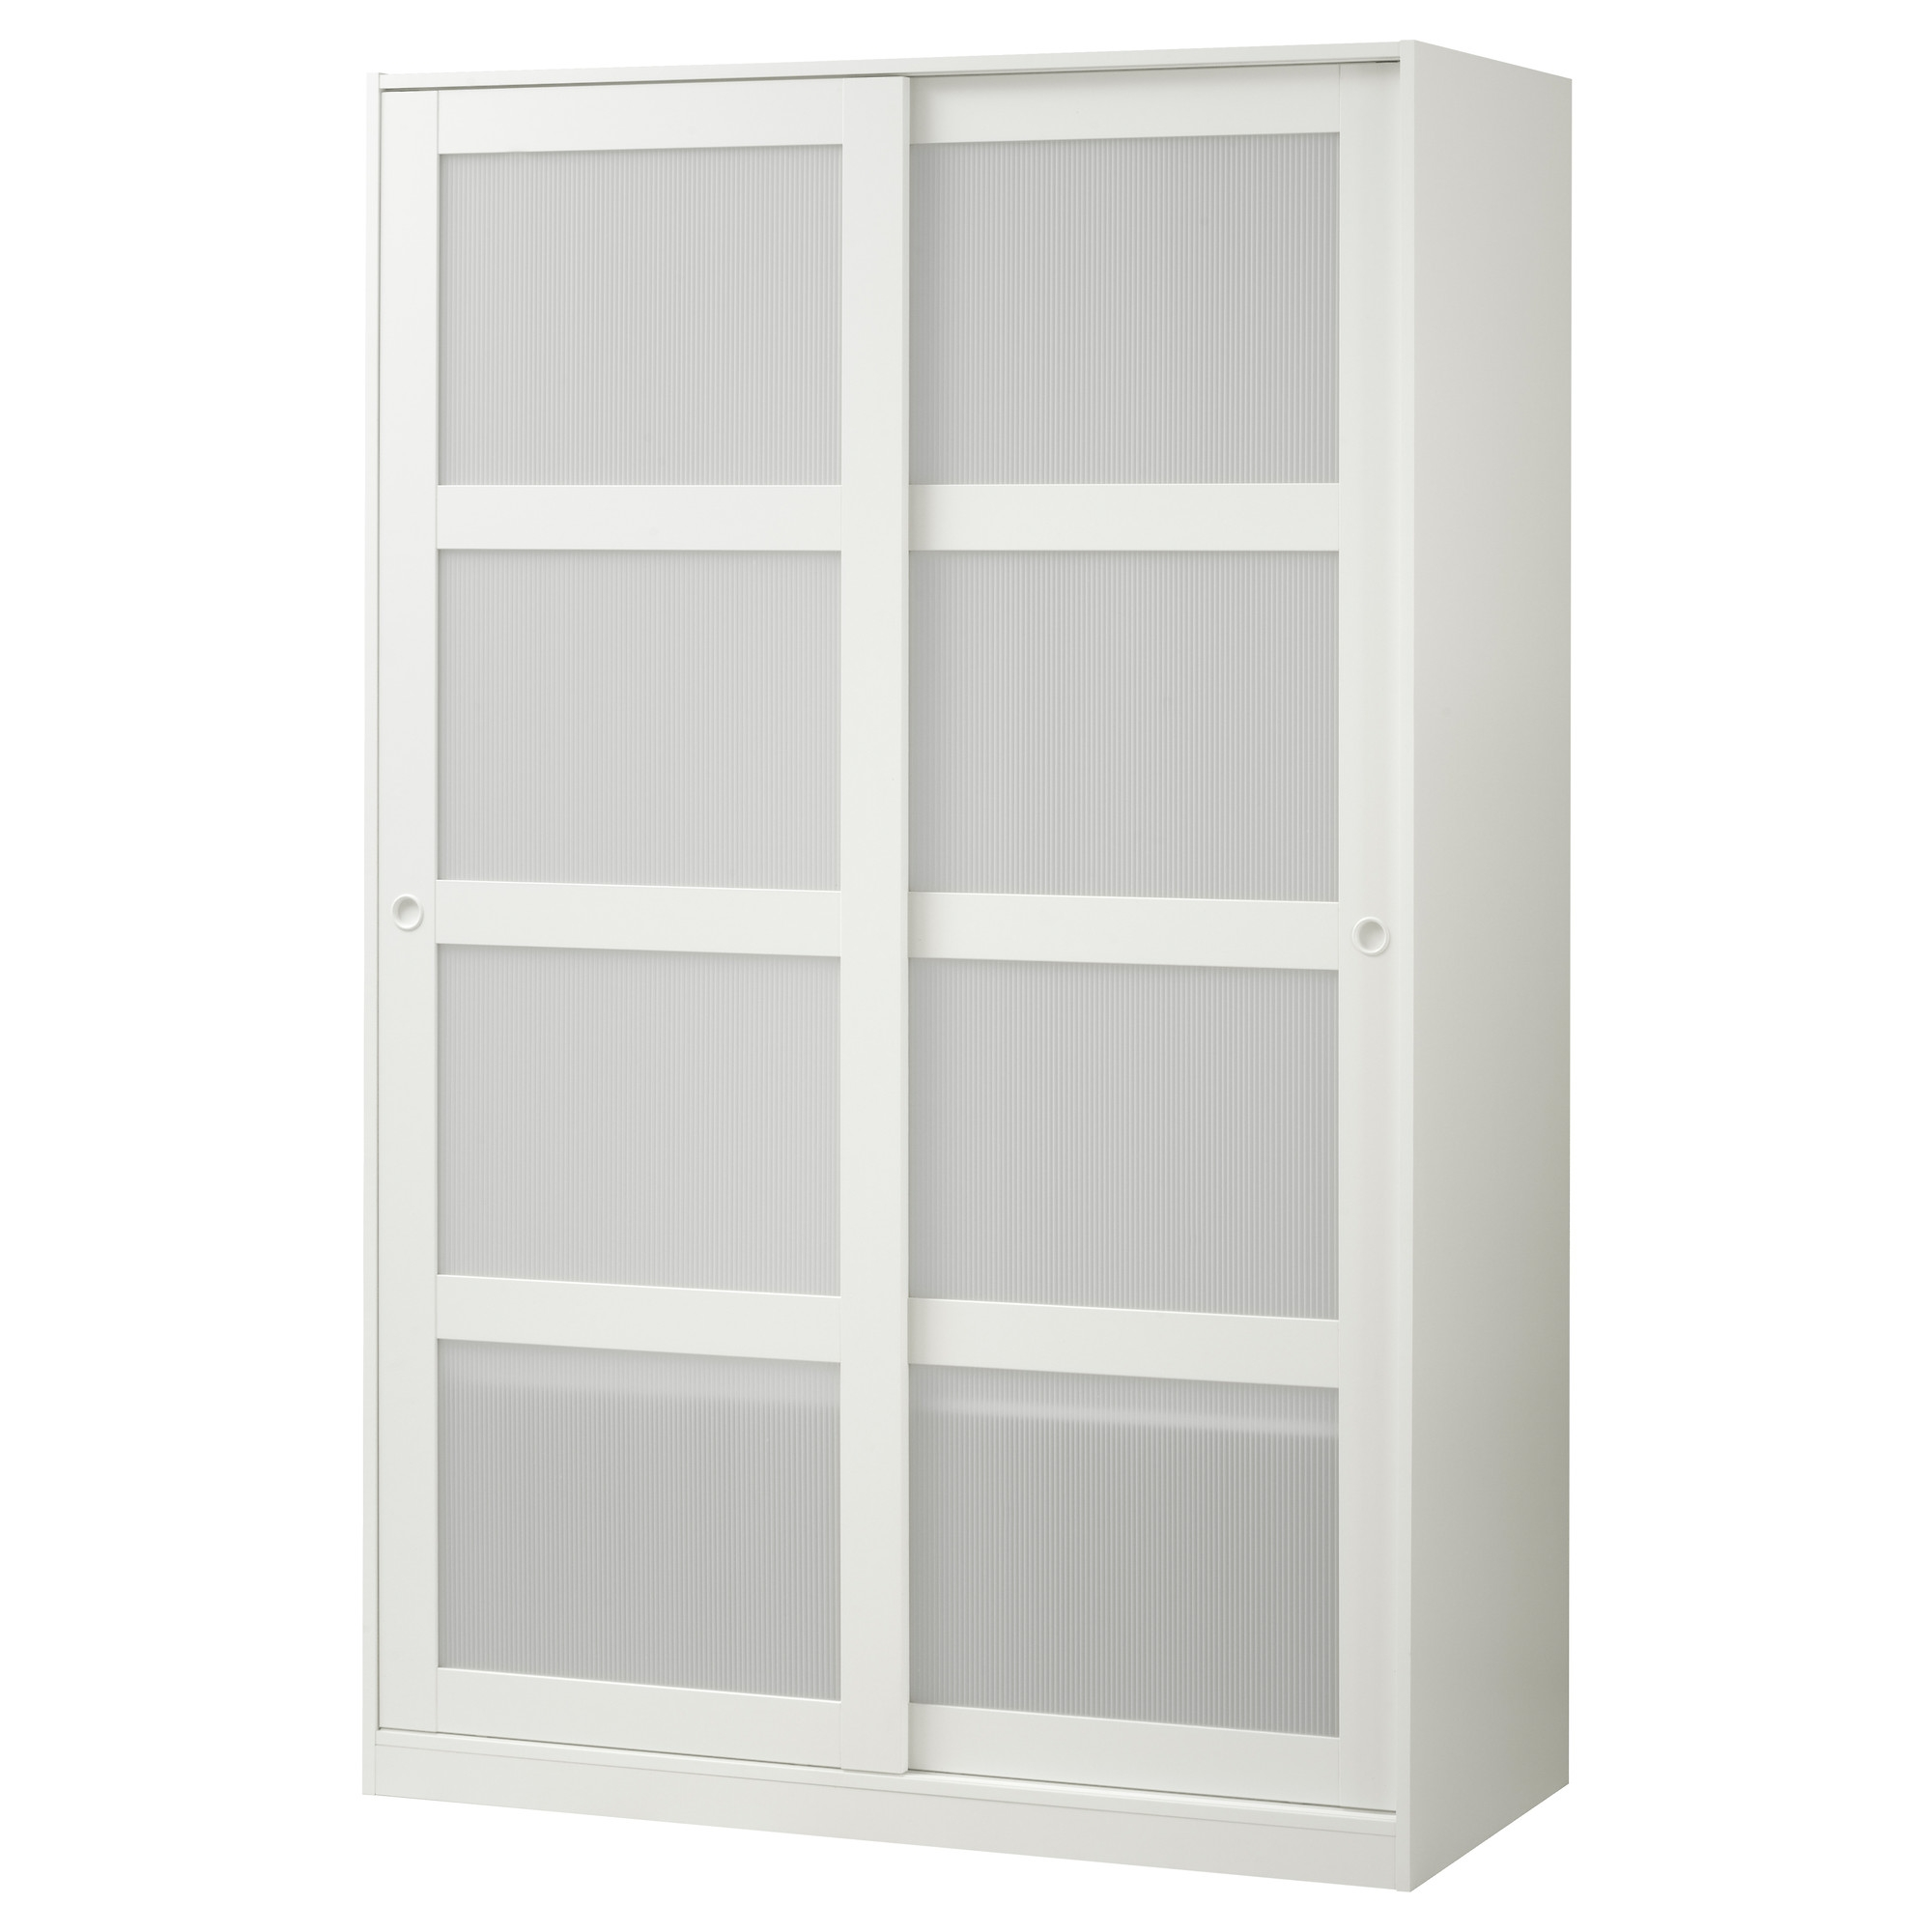 Mueble Para Microondas Ikea Perfect Interesting Stunning Fabulous  # Muebles Microondas Ikea